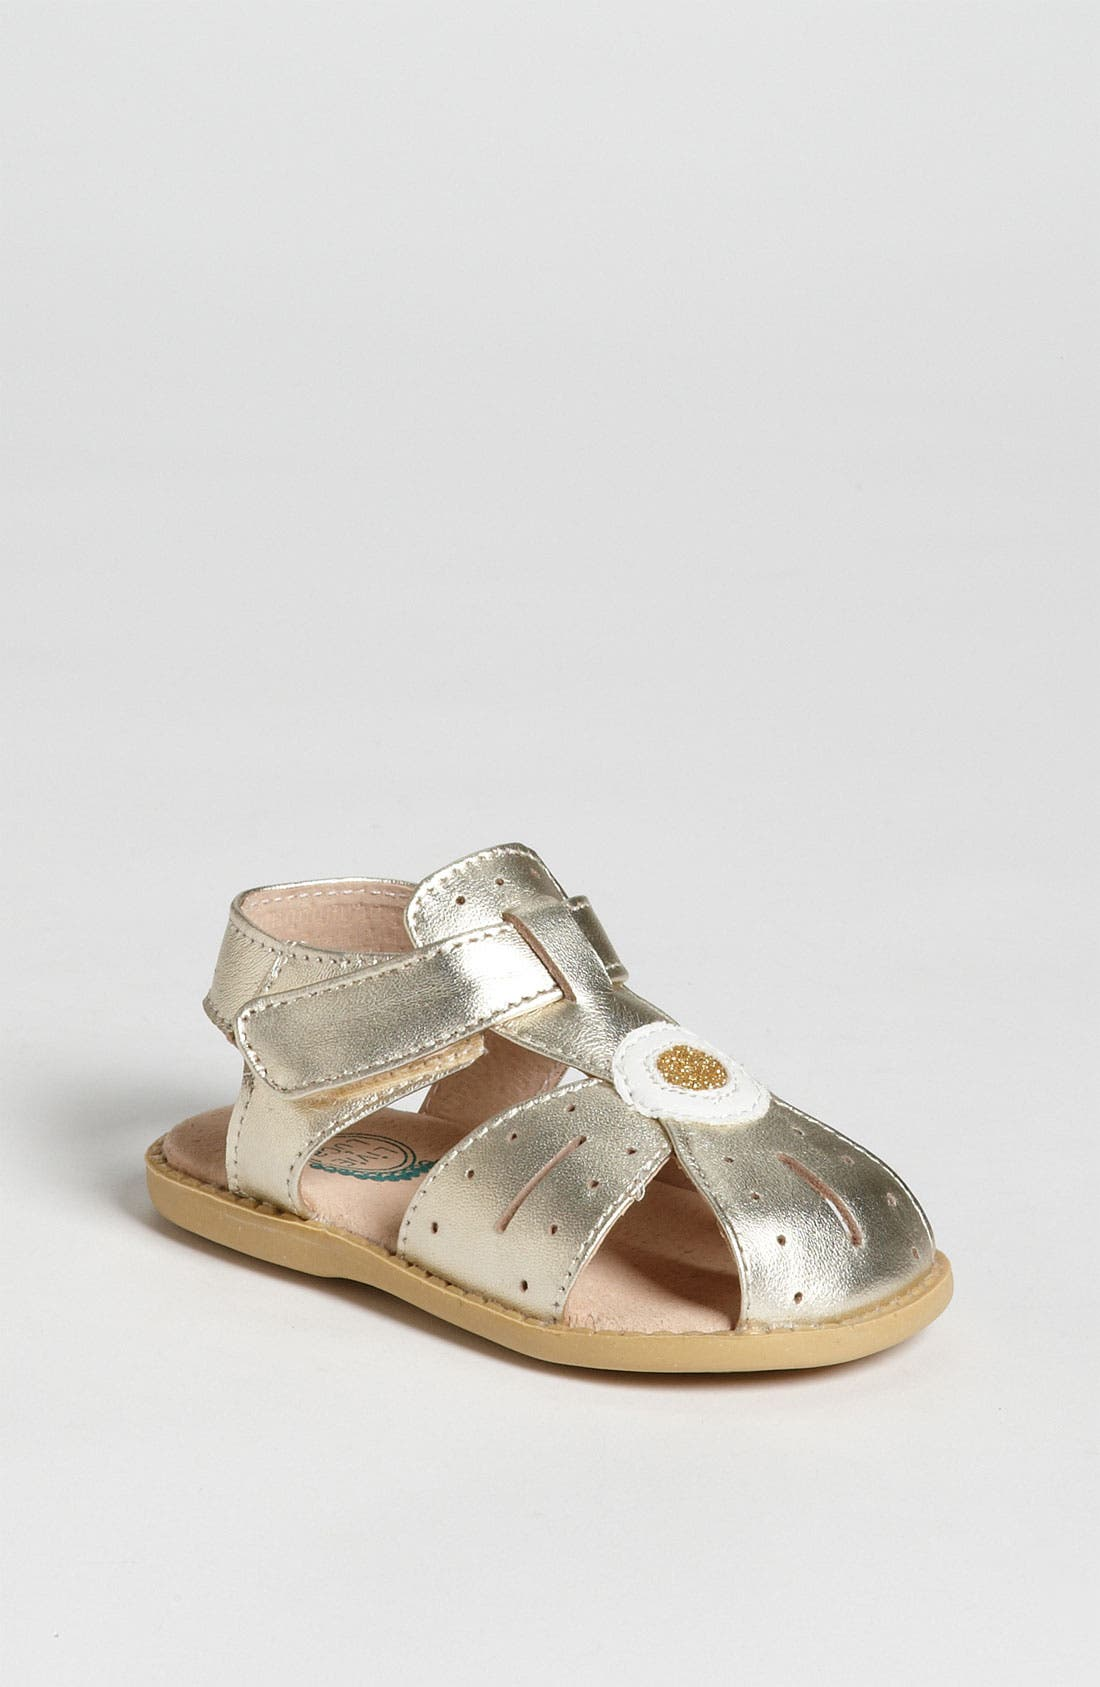 Main Image - Livie & Luca 'Celestina' Sandal (Baby, Walker & Toddler)